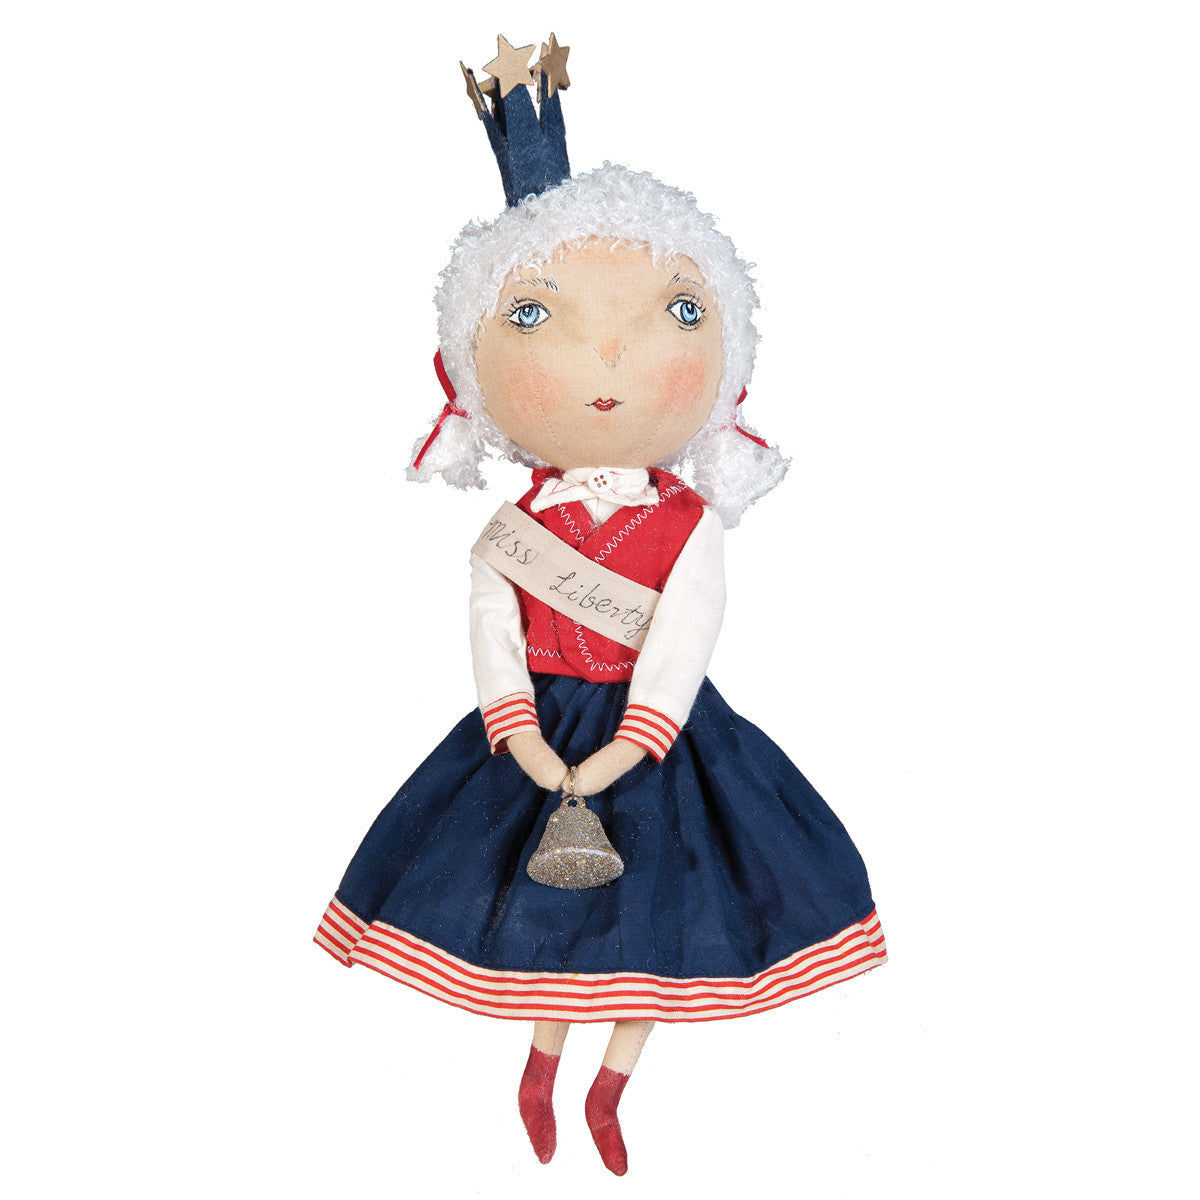 Joe Spencer 4th of July Lady Liberty Doll